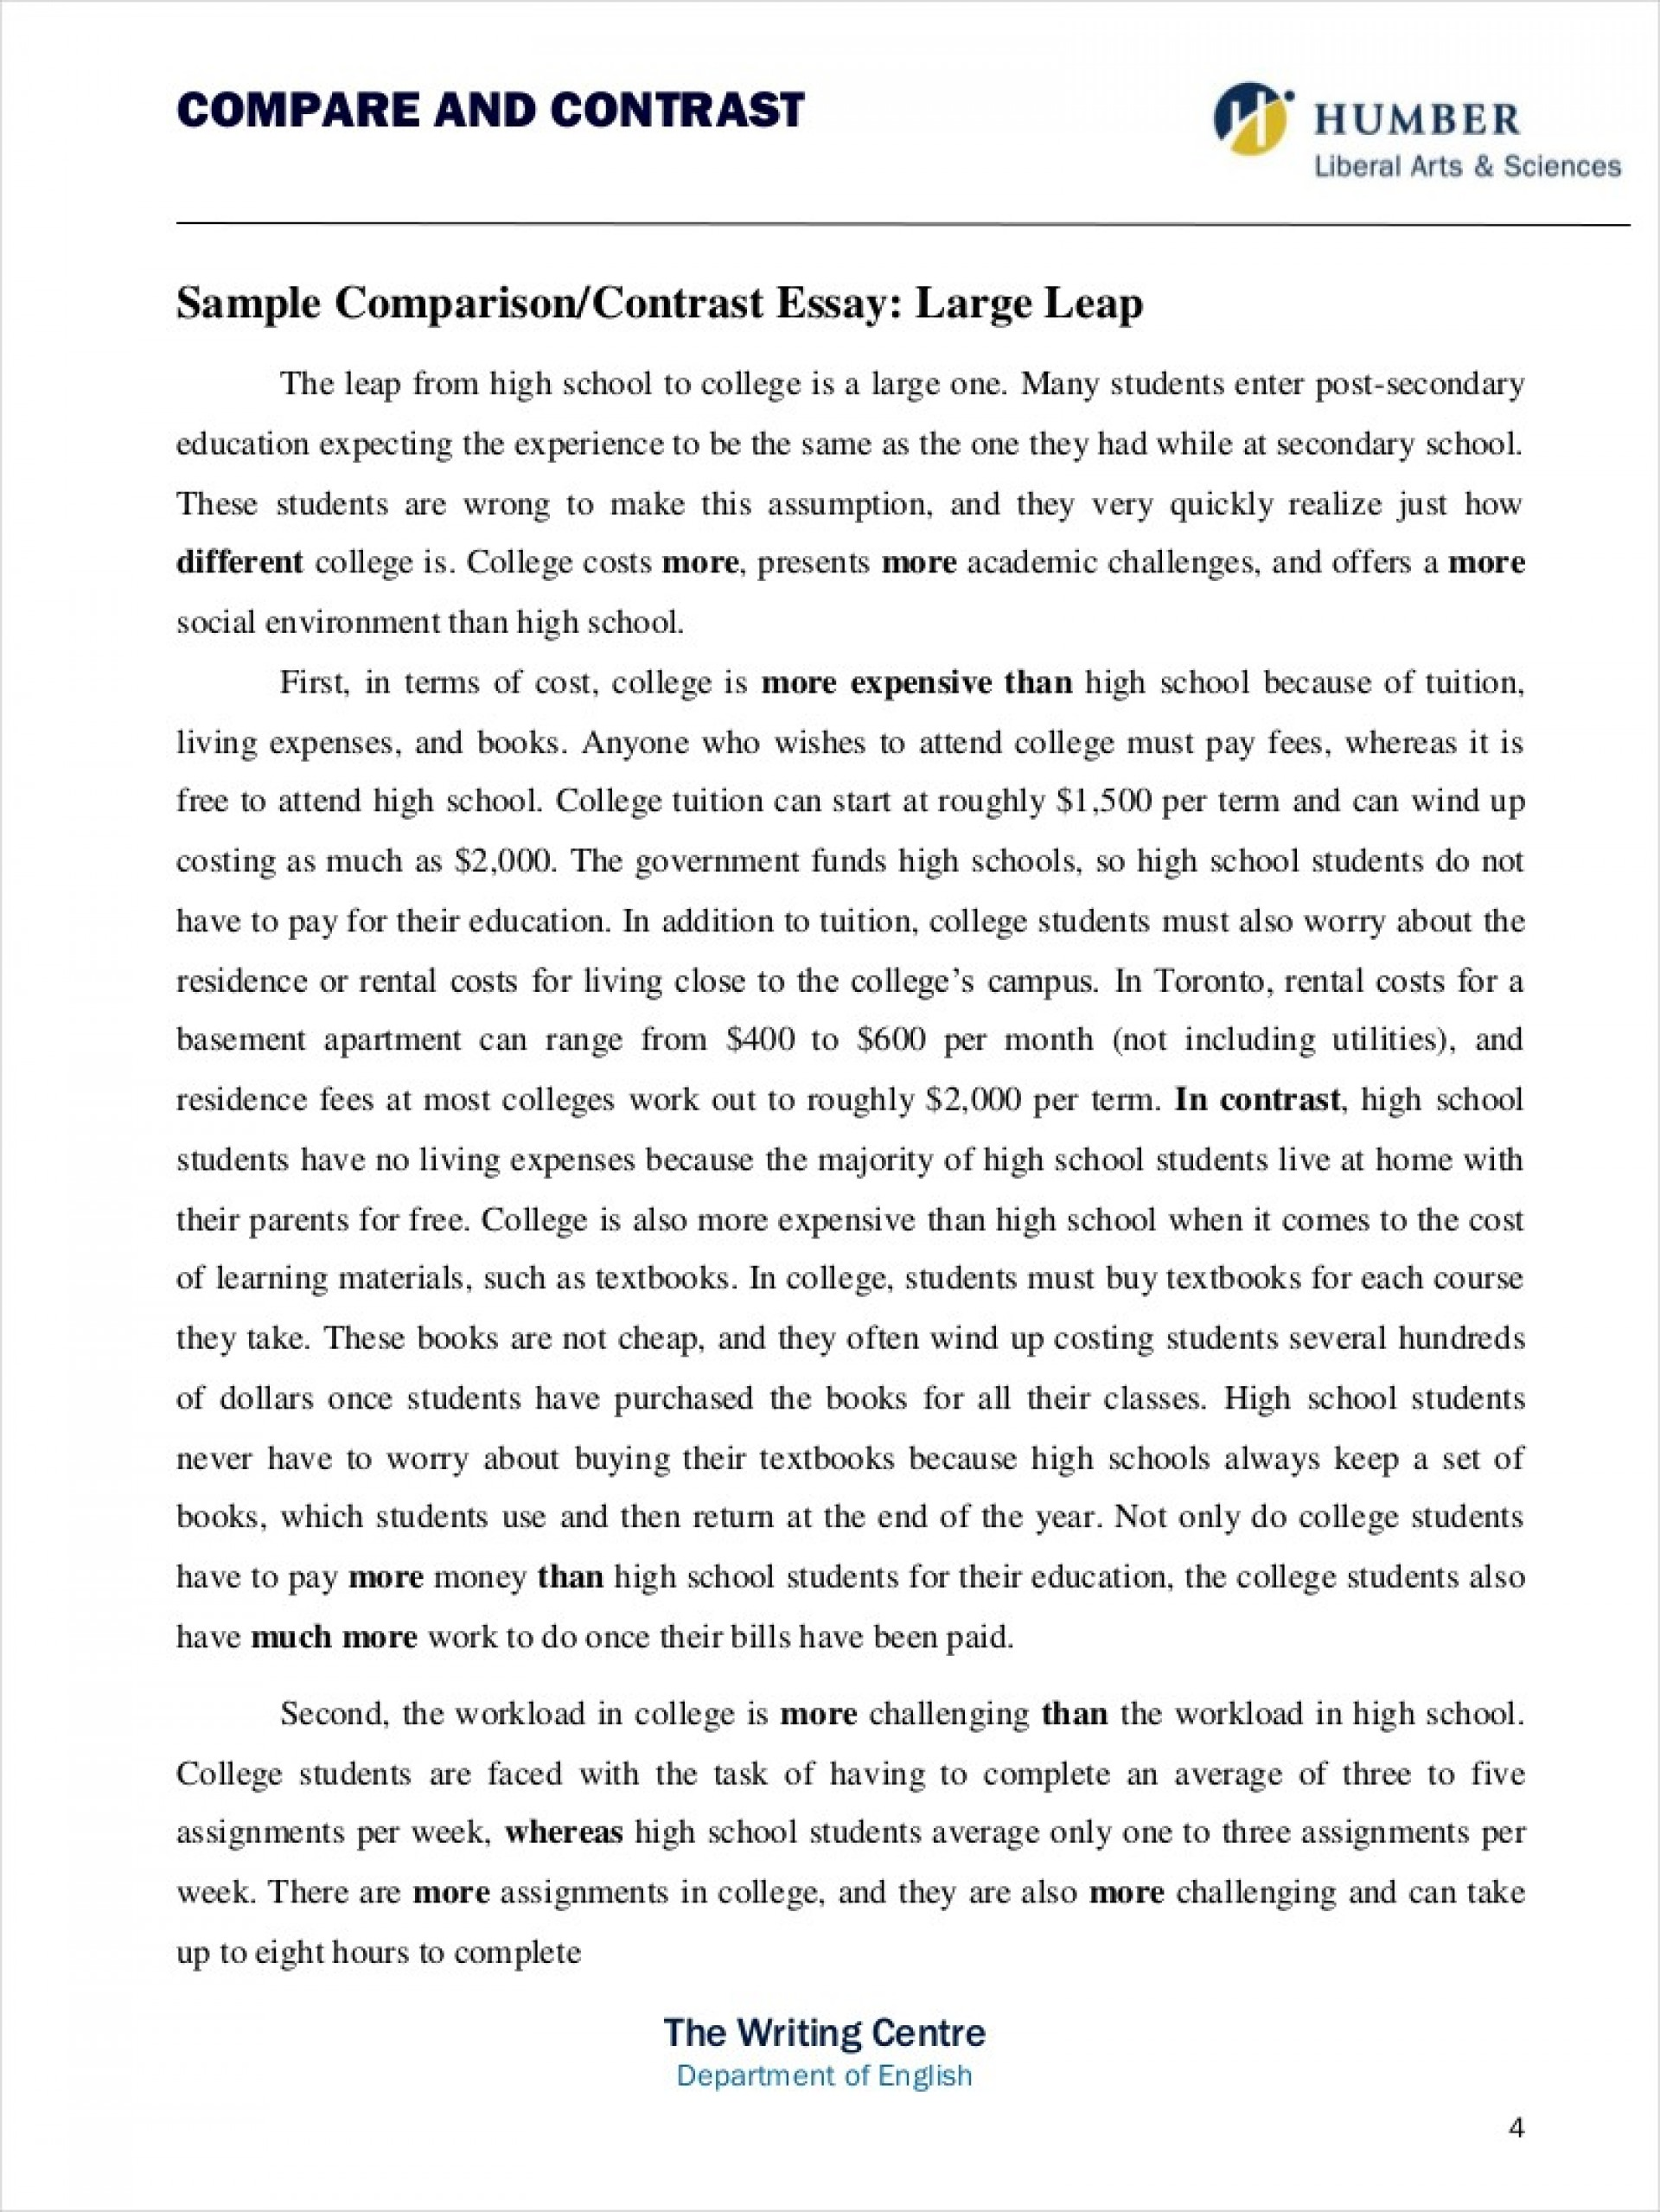 008 Comparing And Contrasting Essay Example Comparative Samples Free Pdf Format Download Examples Of Compare Contrast Unique Essays For College Comparison Topics Fifth Grade 1920